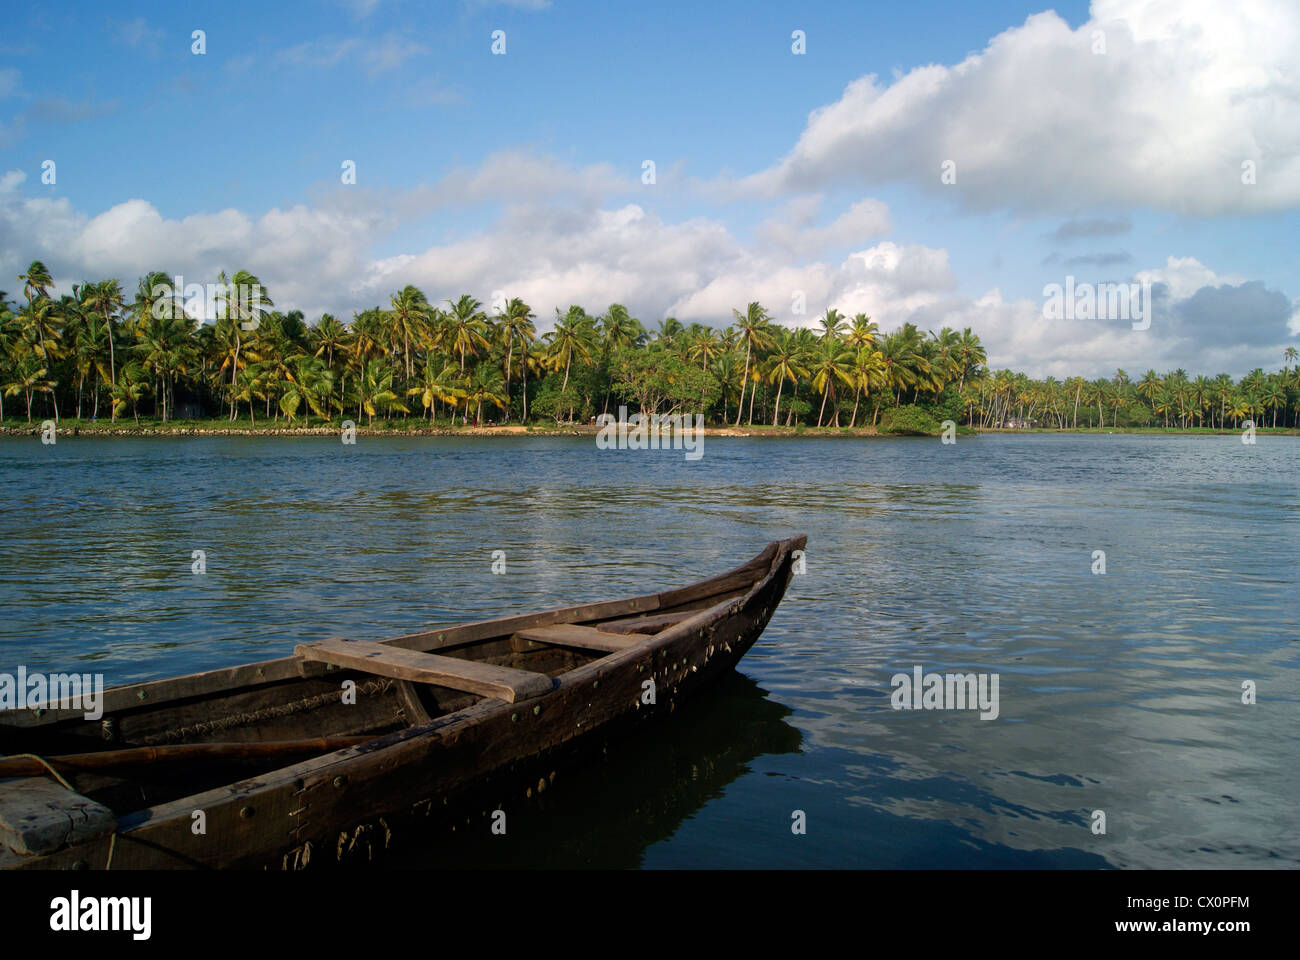 Serene View of Kerala Backwaters Scenery and Wide Angle View of Coconut Palm India Landscapes with Traditional Country - Stock Image